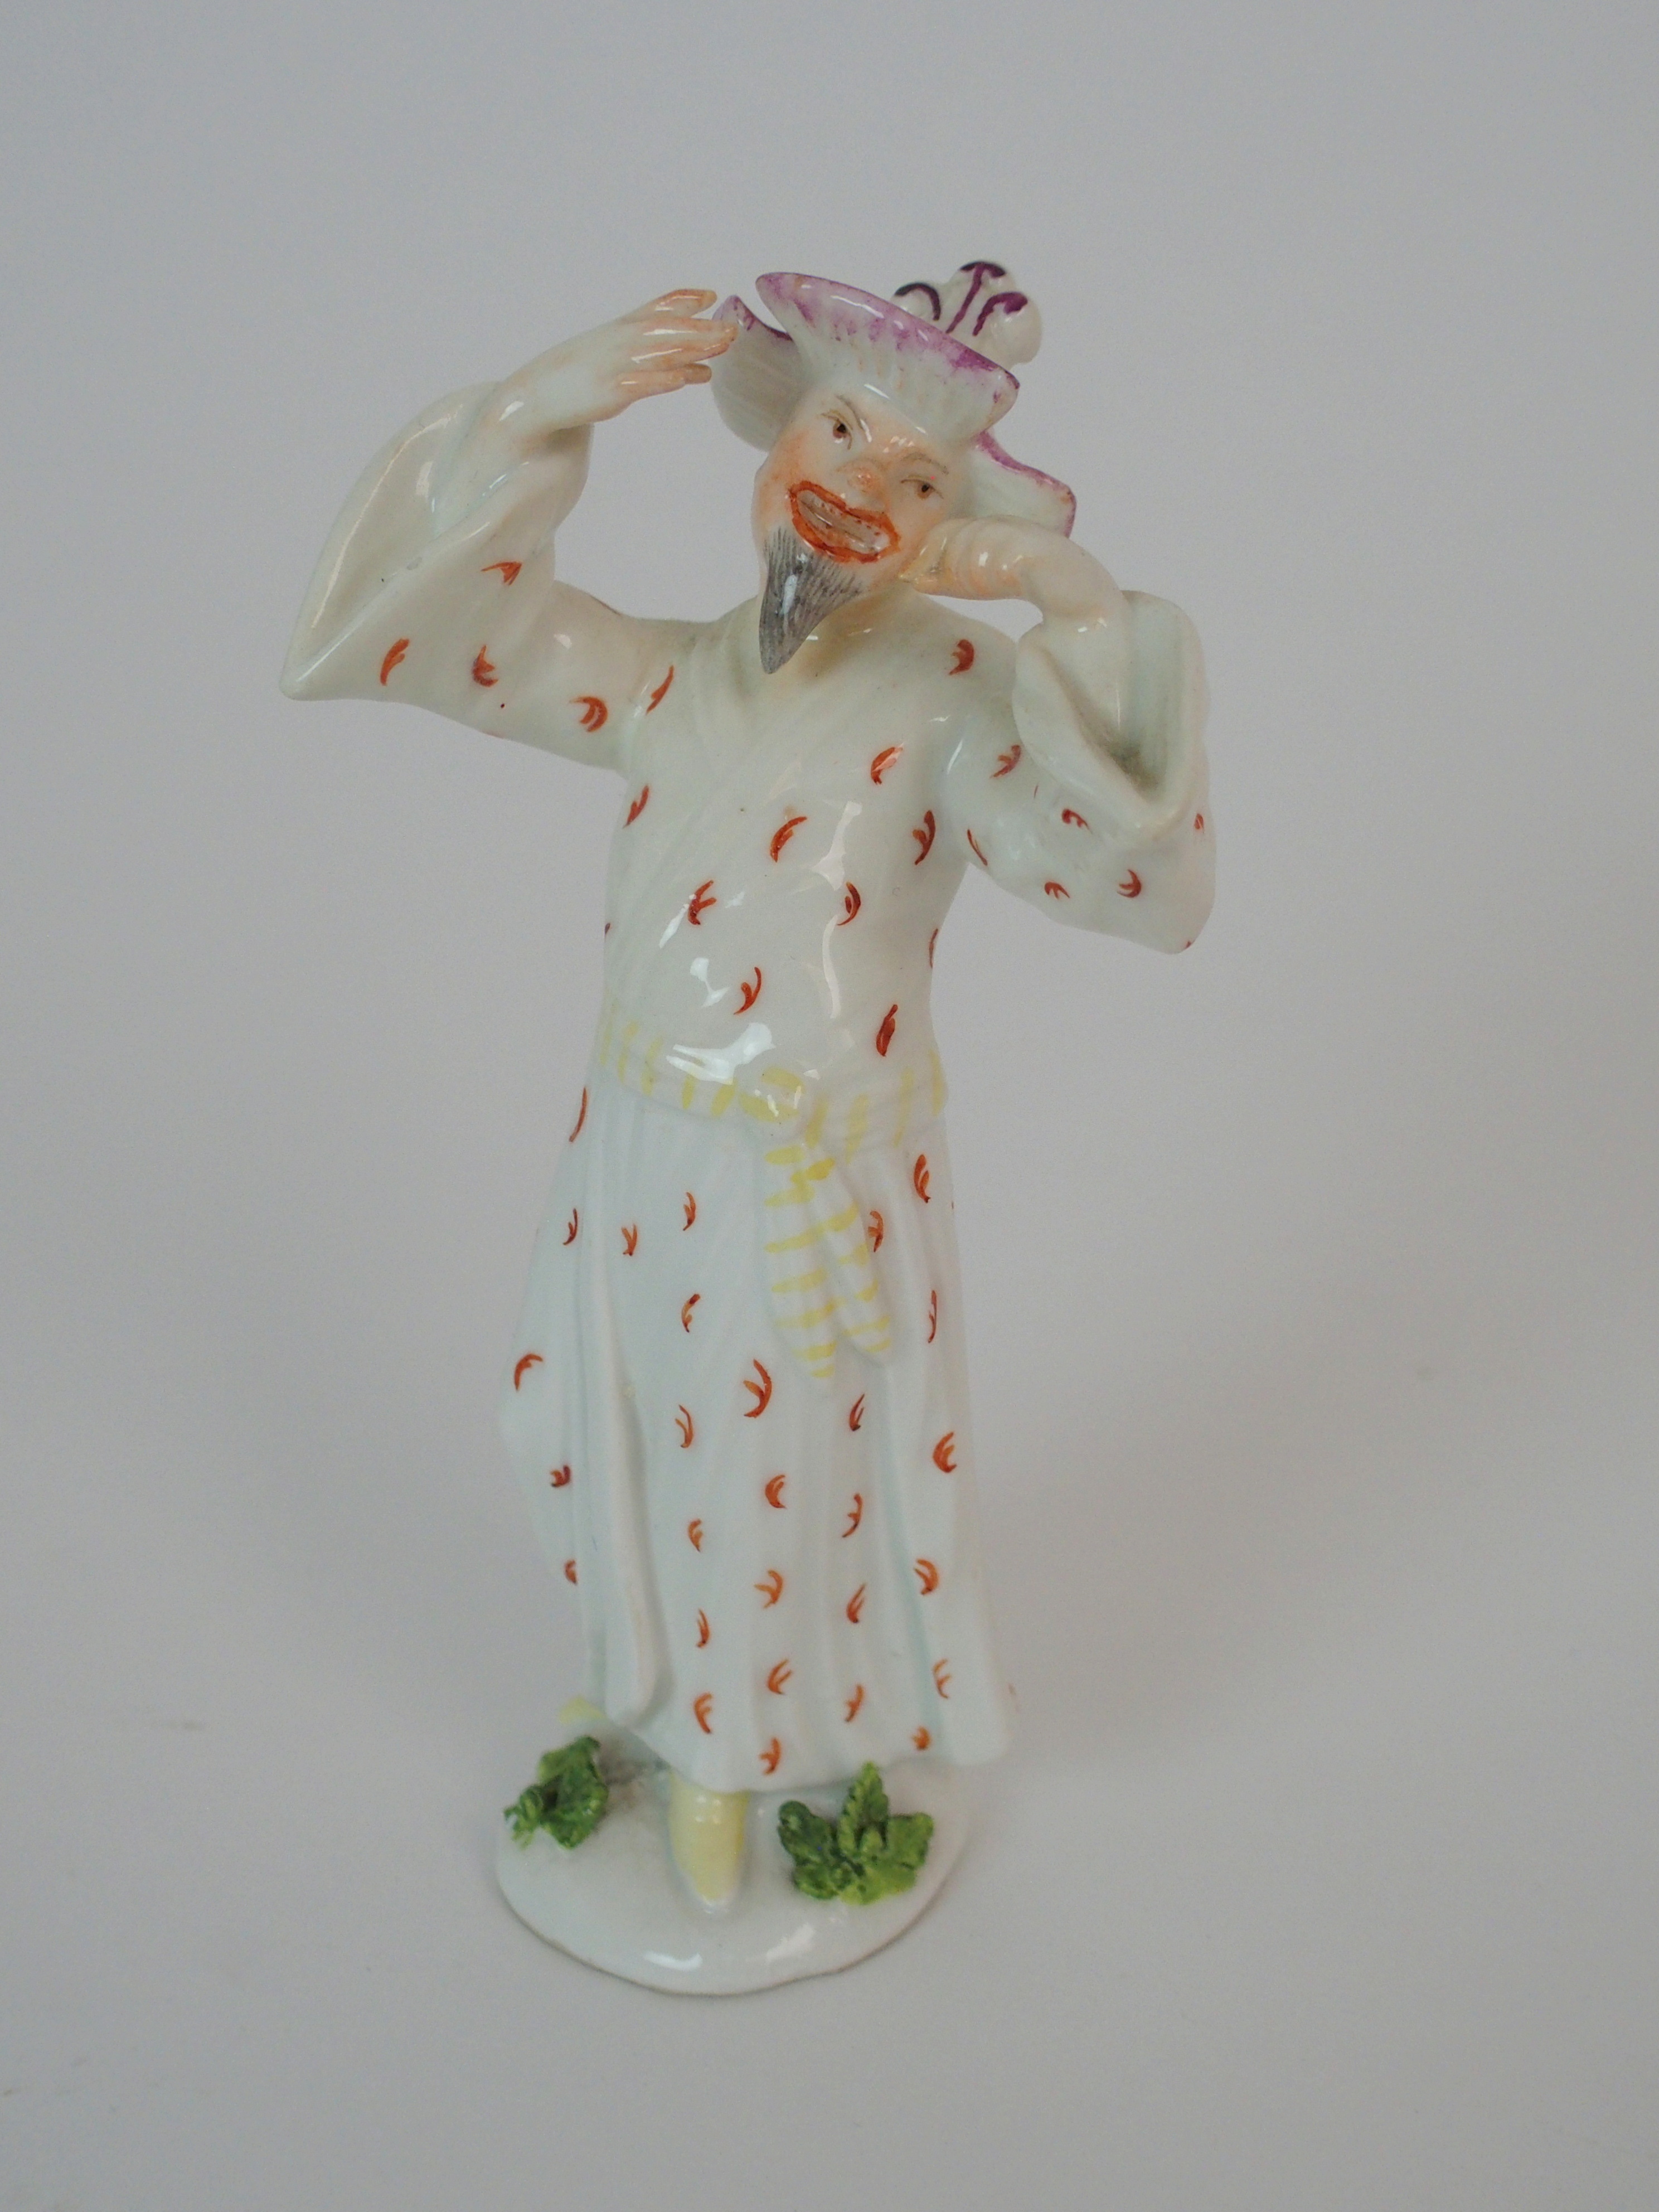 A MEISSEN FIGURE OF A CHINESE MAN 12cm high Condition Report: